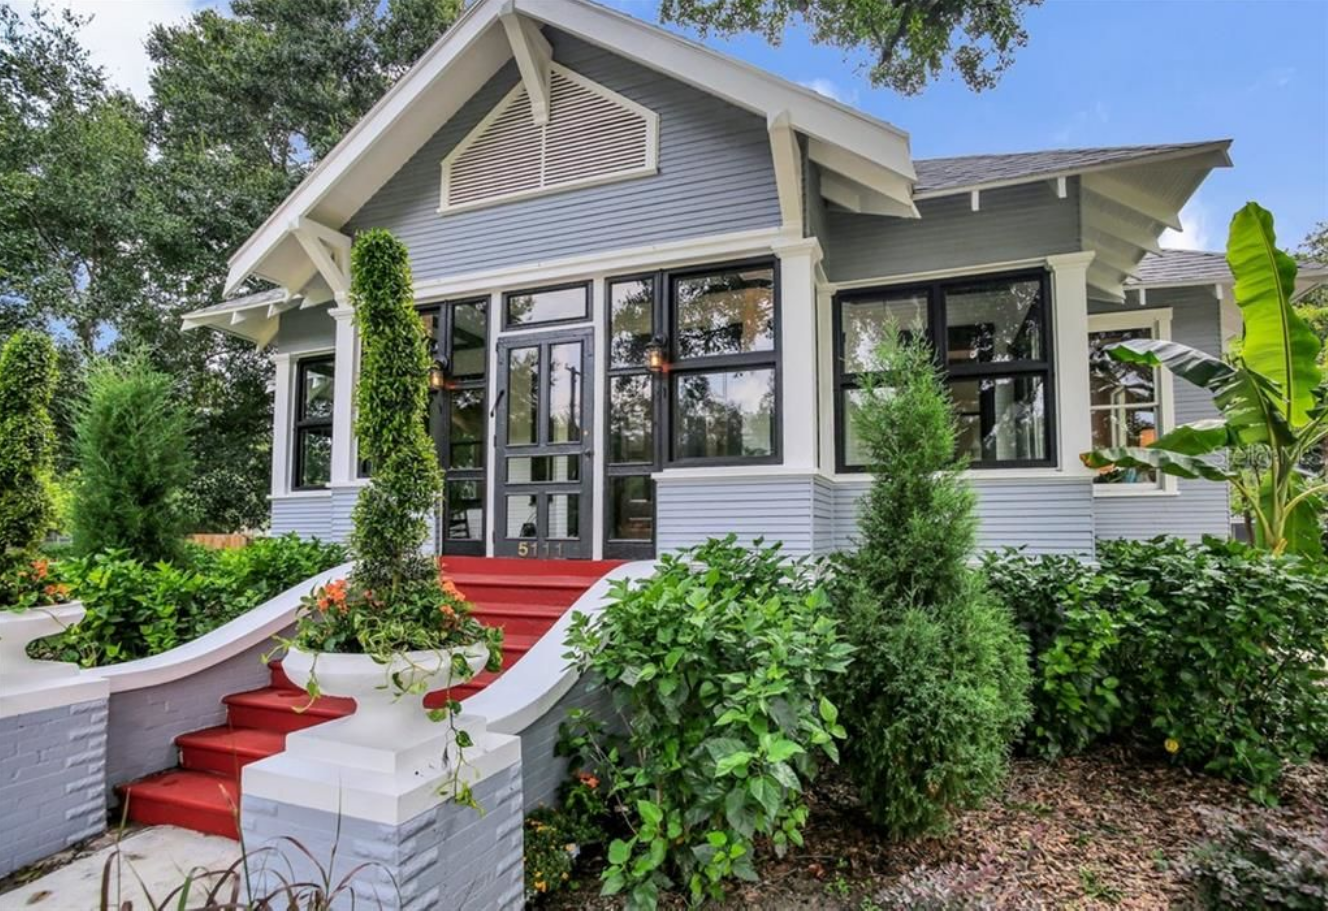 Historically Restored Home Sets Real Estate Record in Seminole Heights, Florida